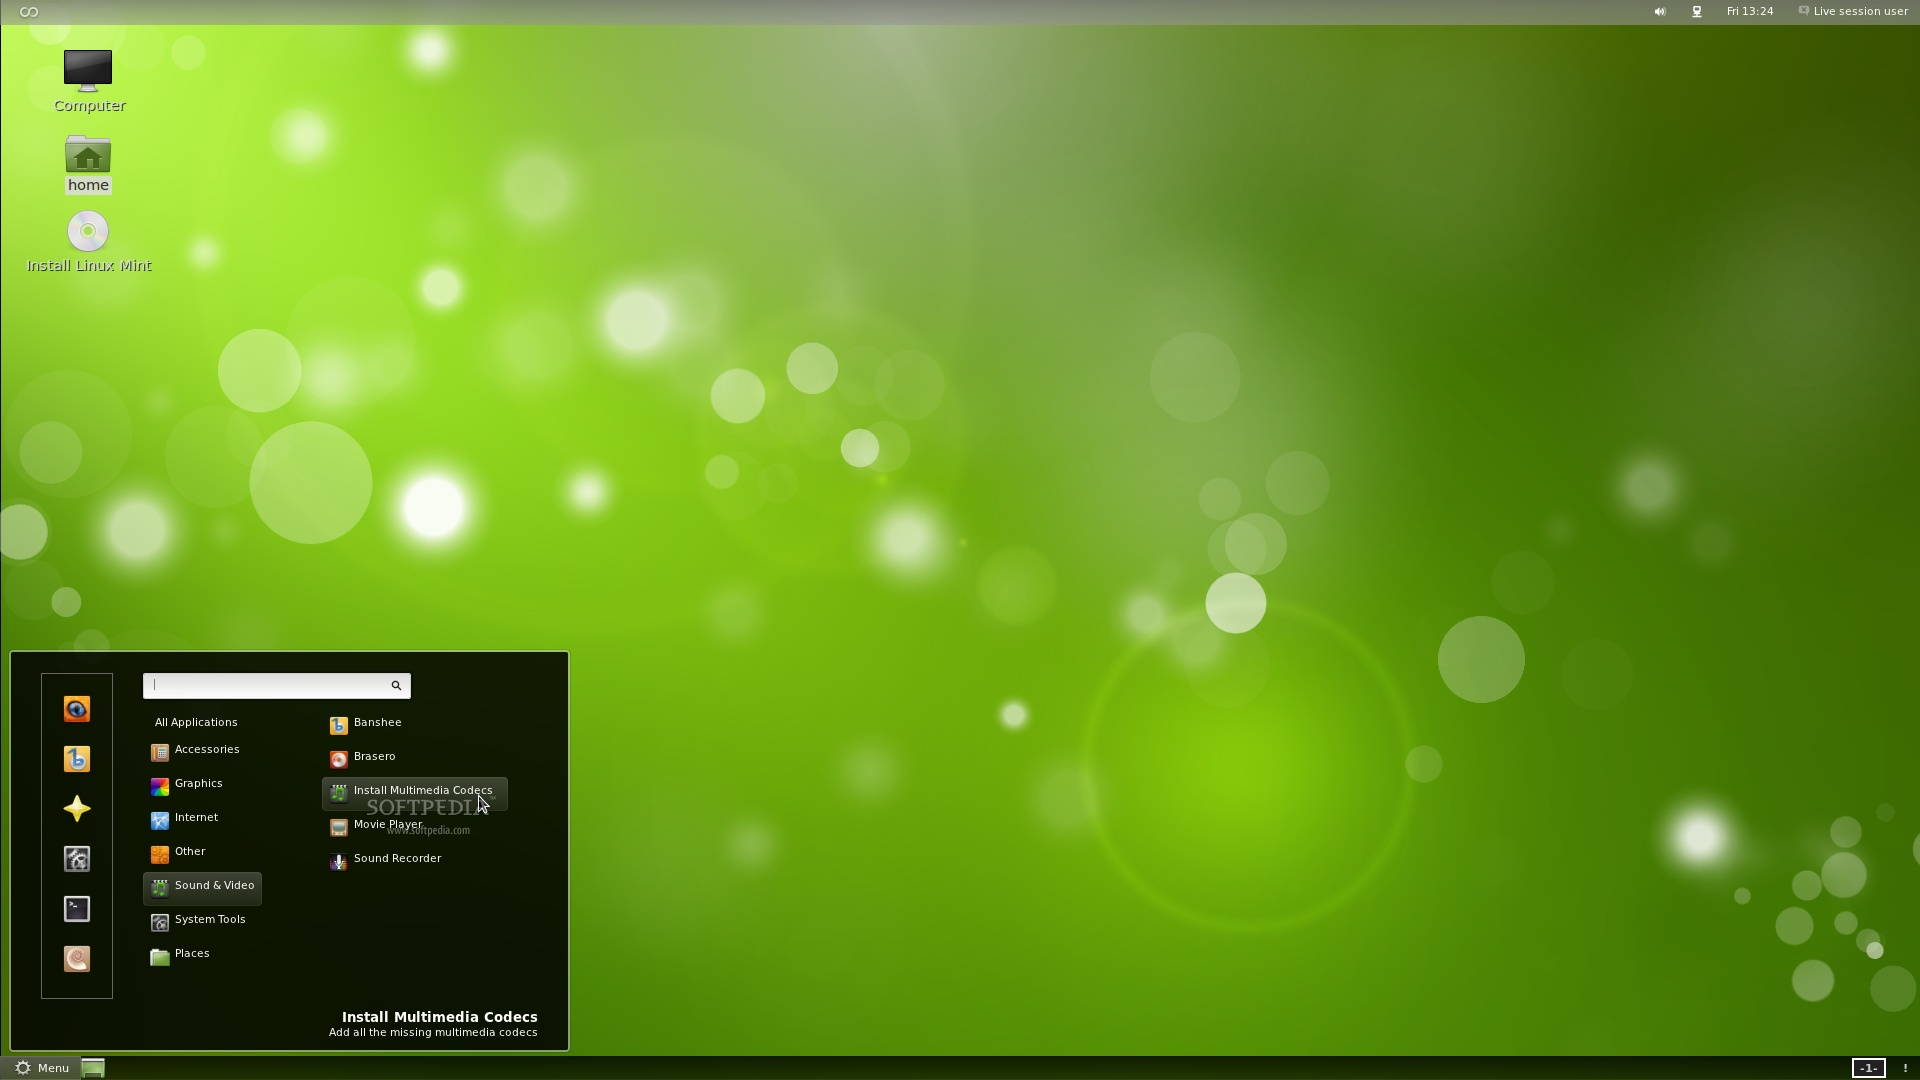 Linux Mint Software Manager 1920x1080